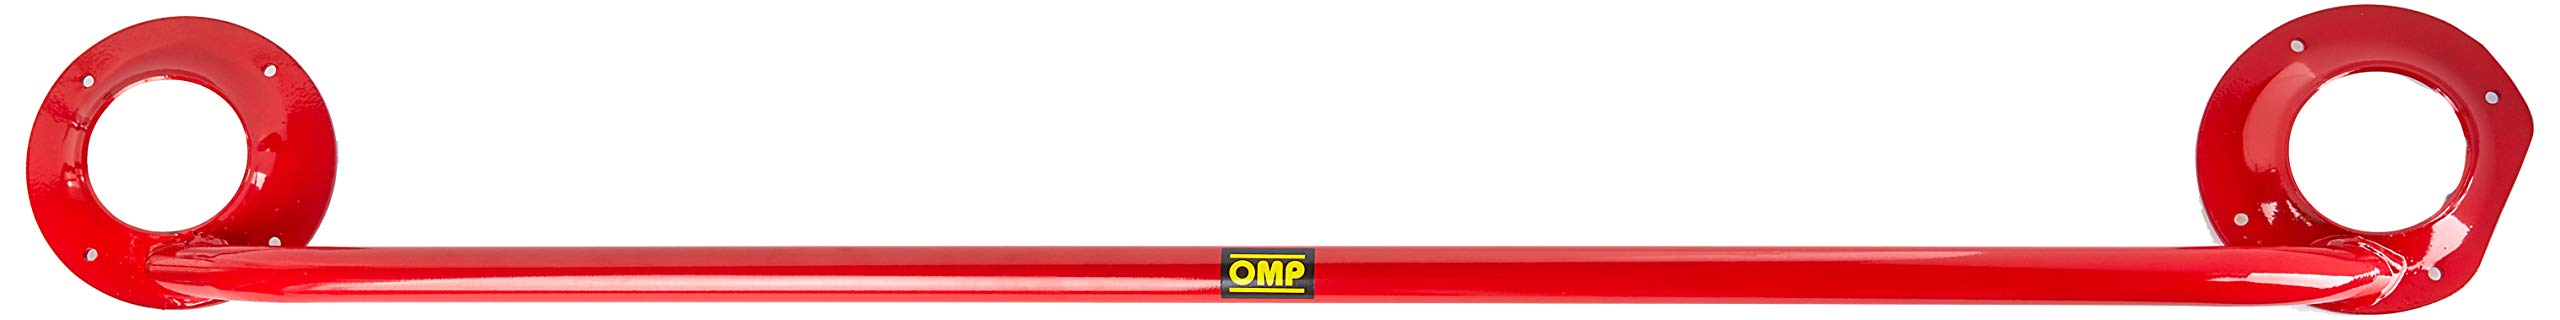 Omp ompma/1782 Bar Reinforcement Suspension by OMP